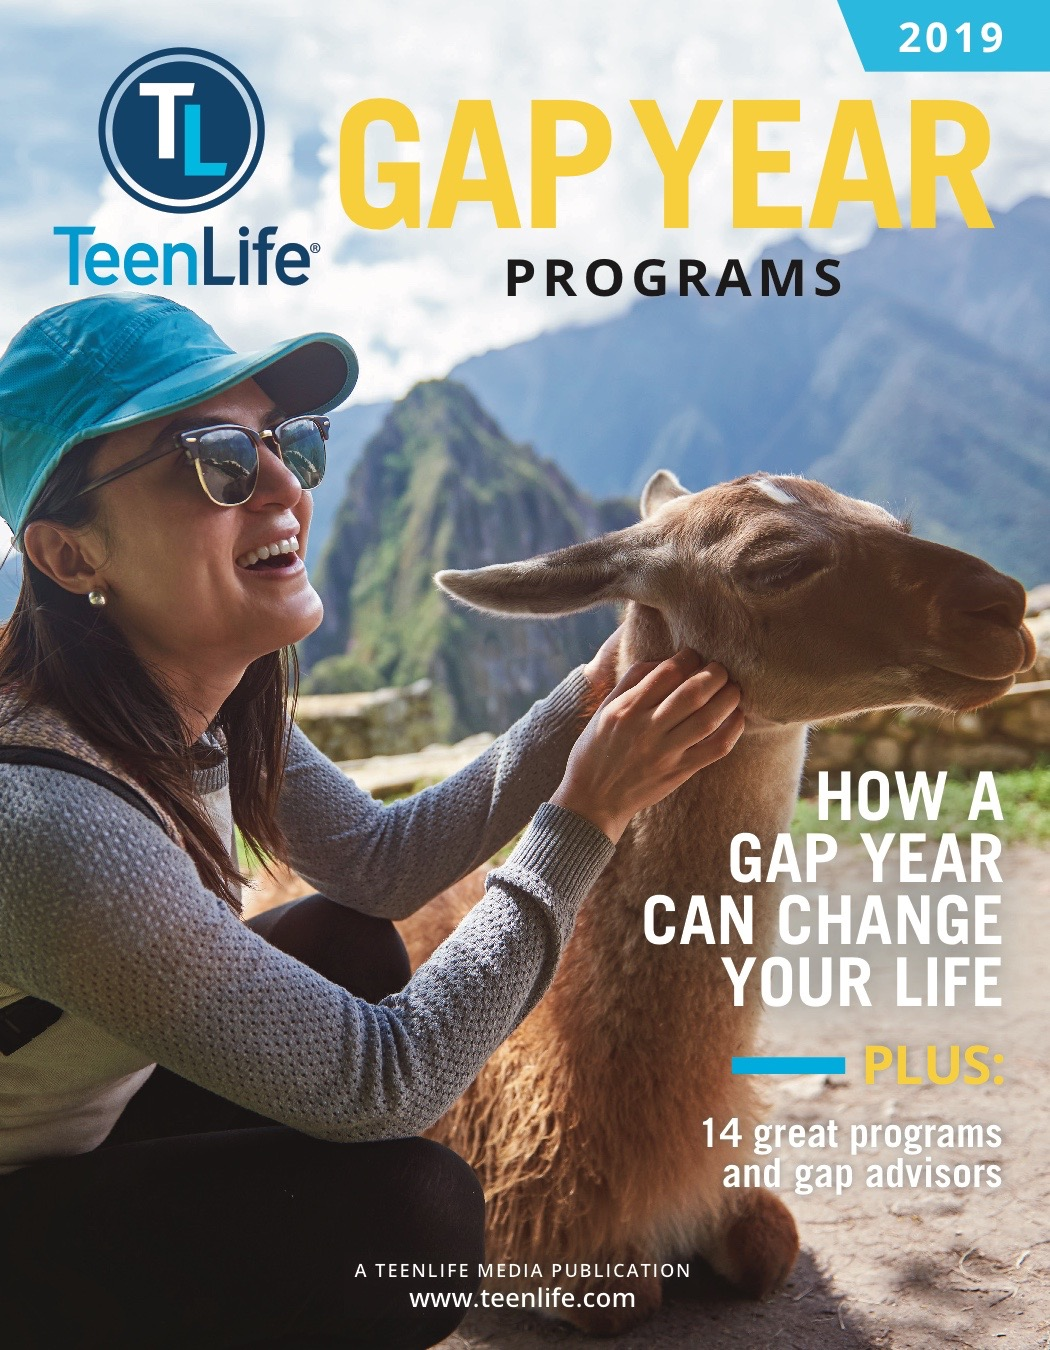 Guide to Gap Year Programs